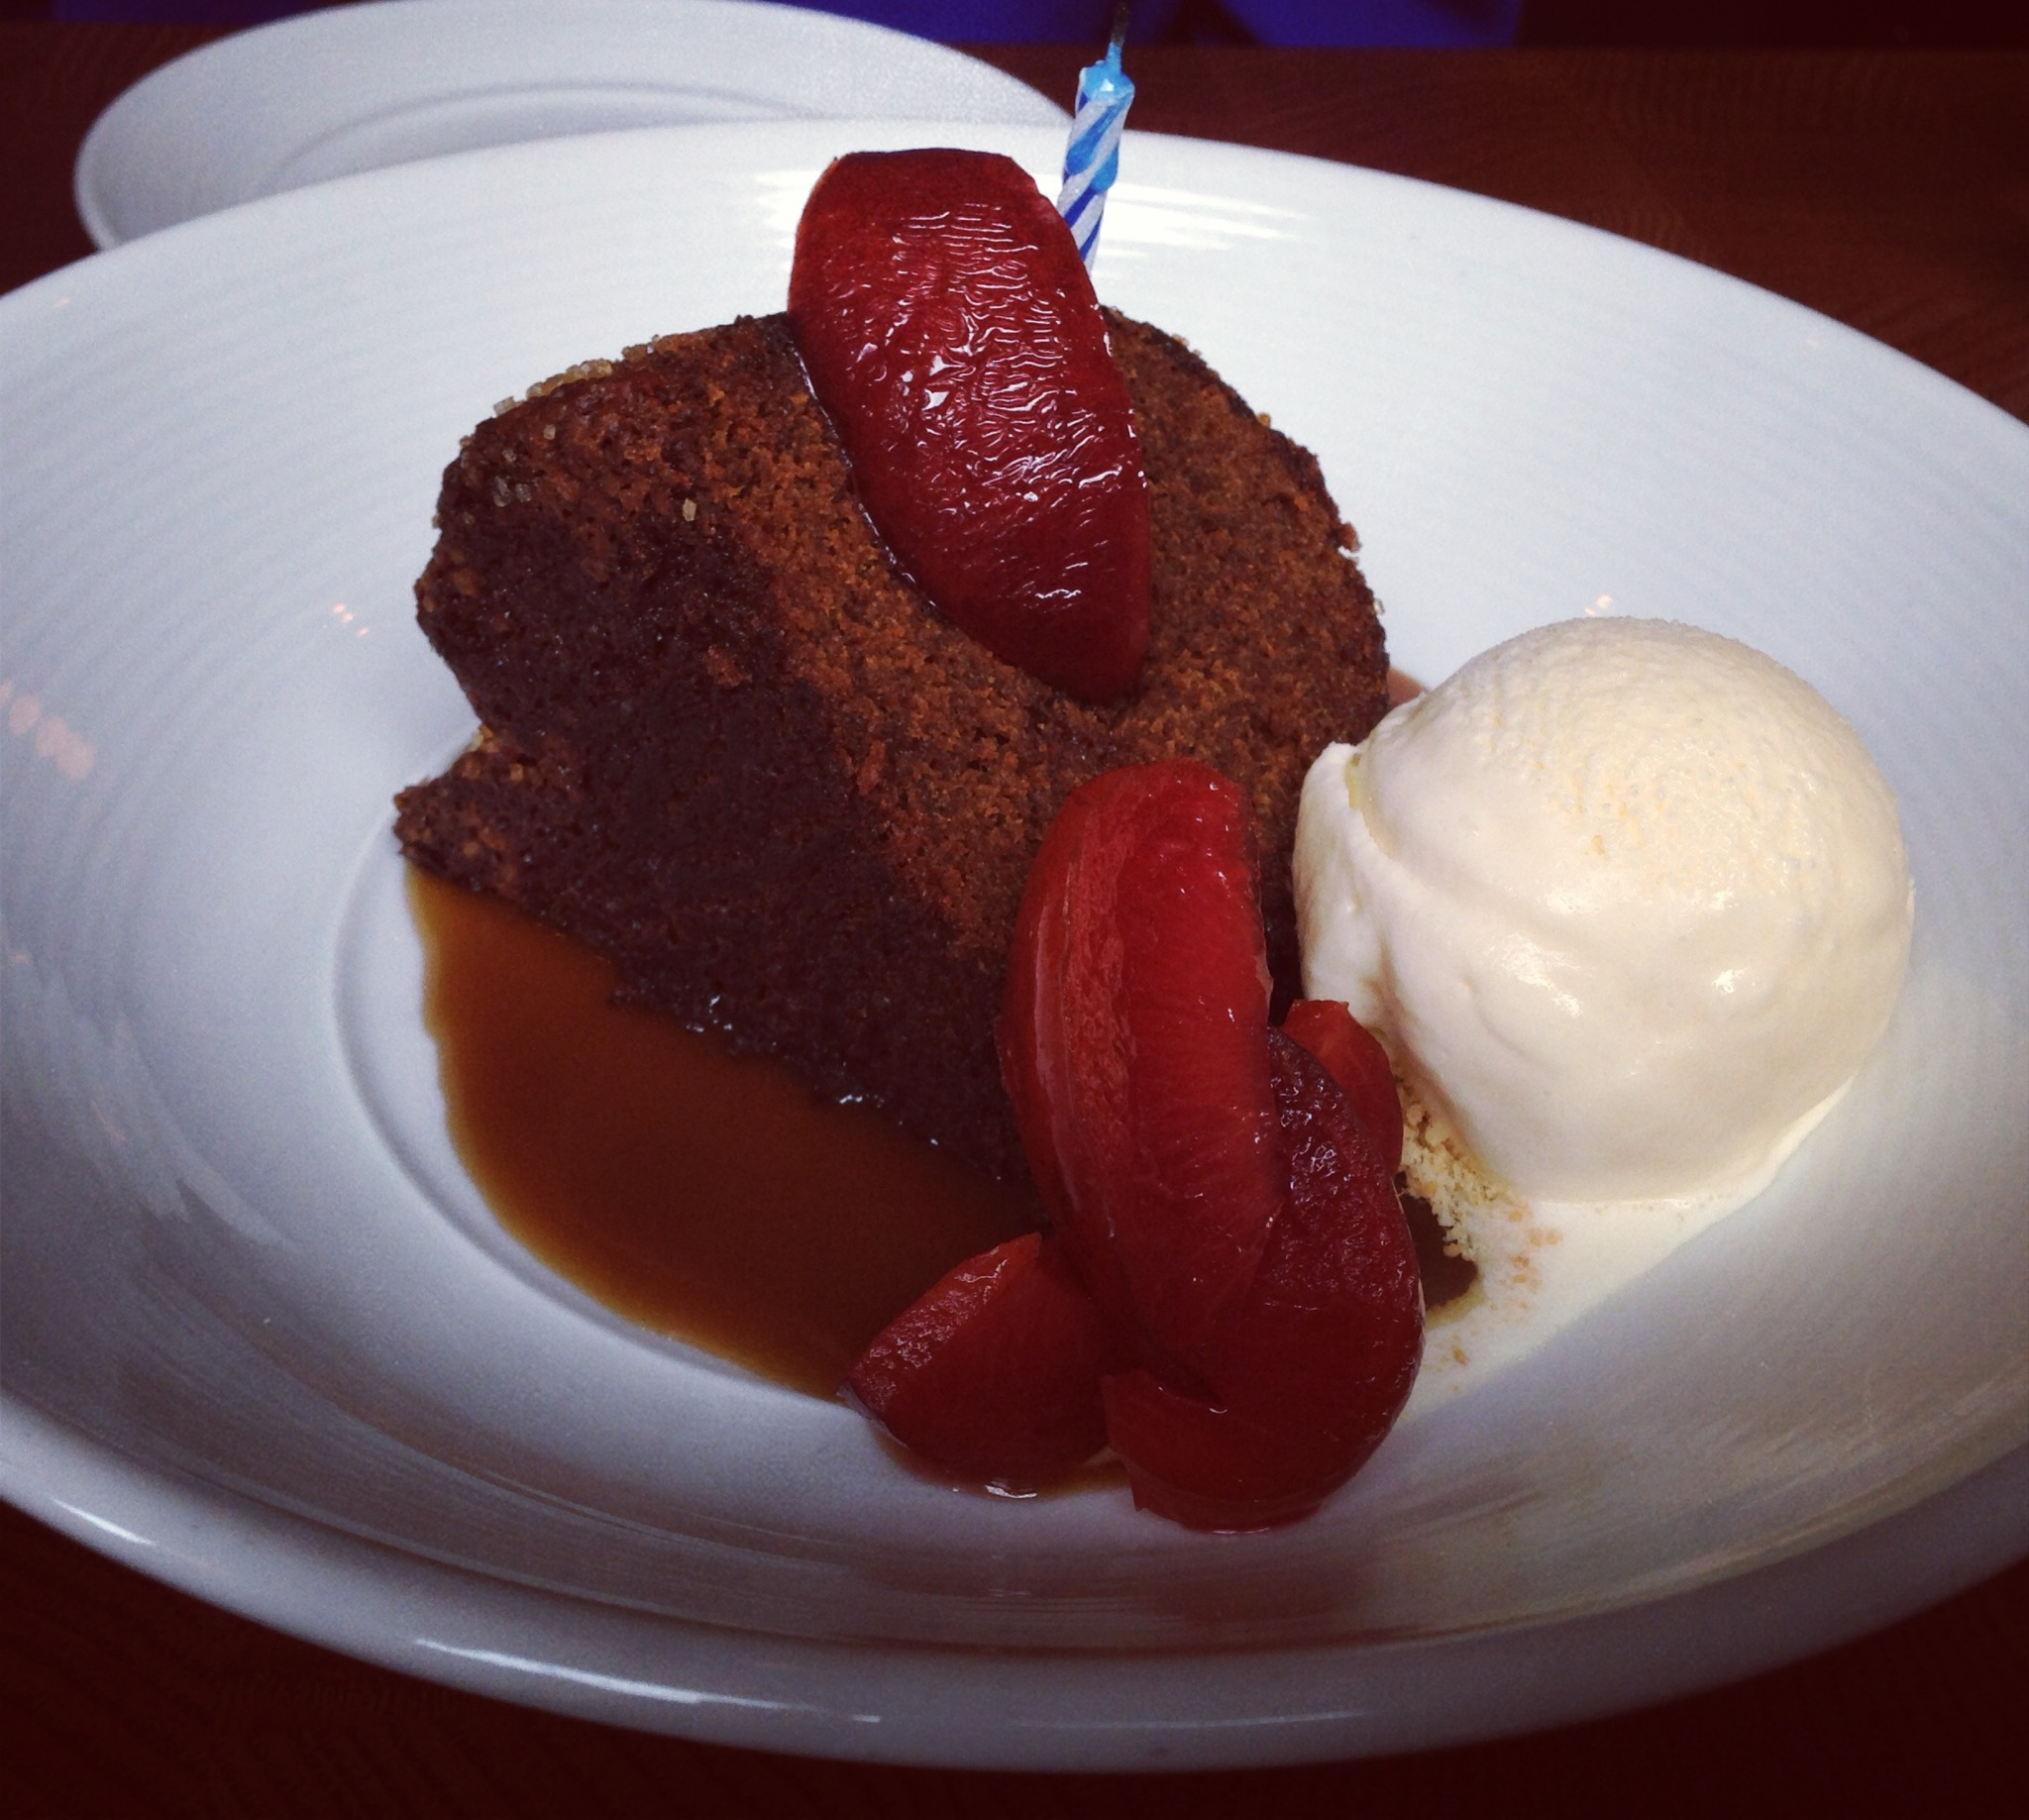 ... Cake, Caramel Sauce, Spiced and Roasted Plums, Vanilla Ice Cream